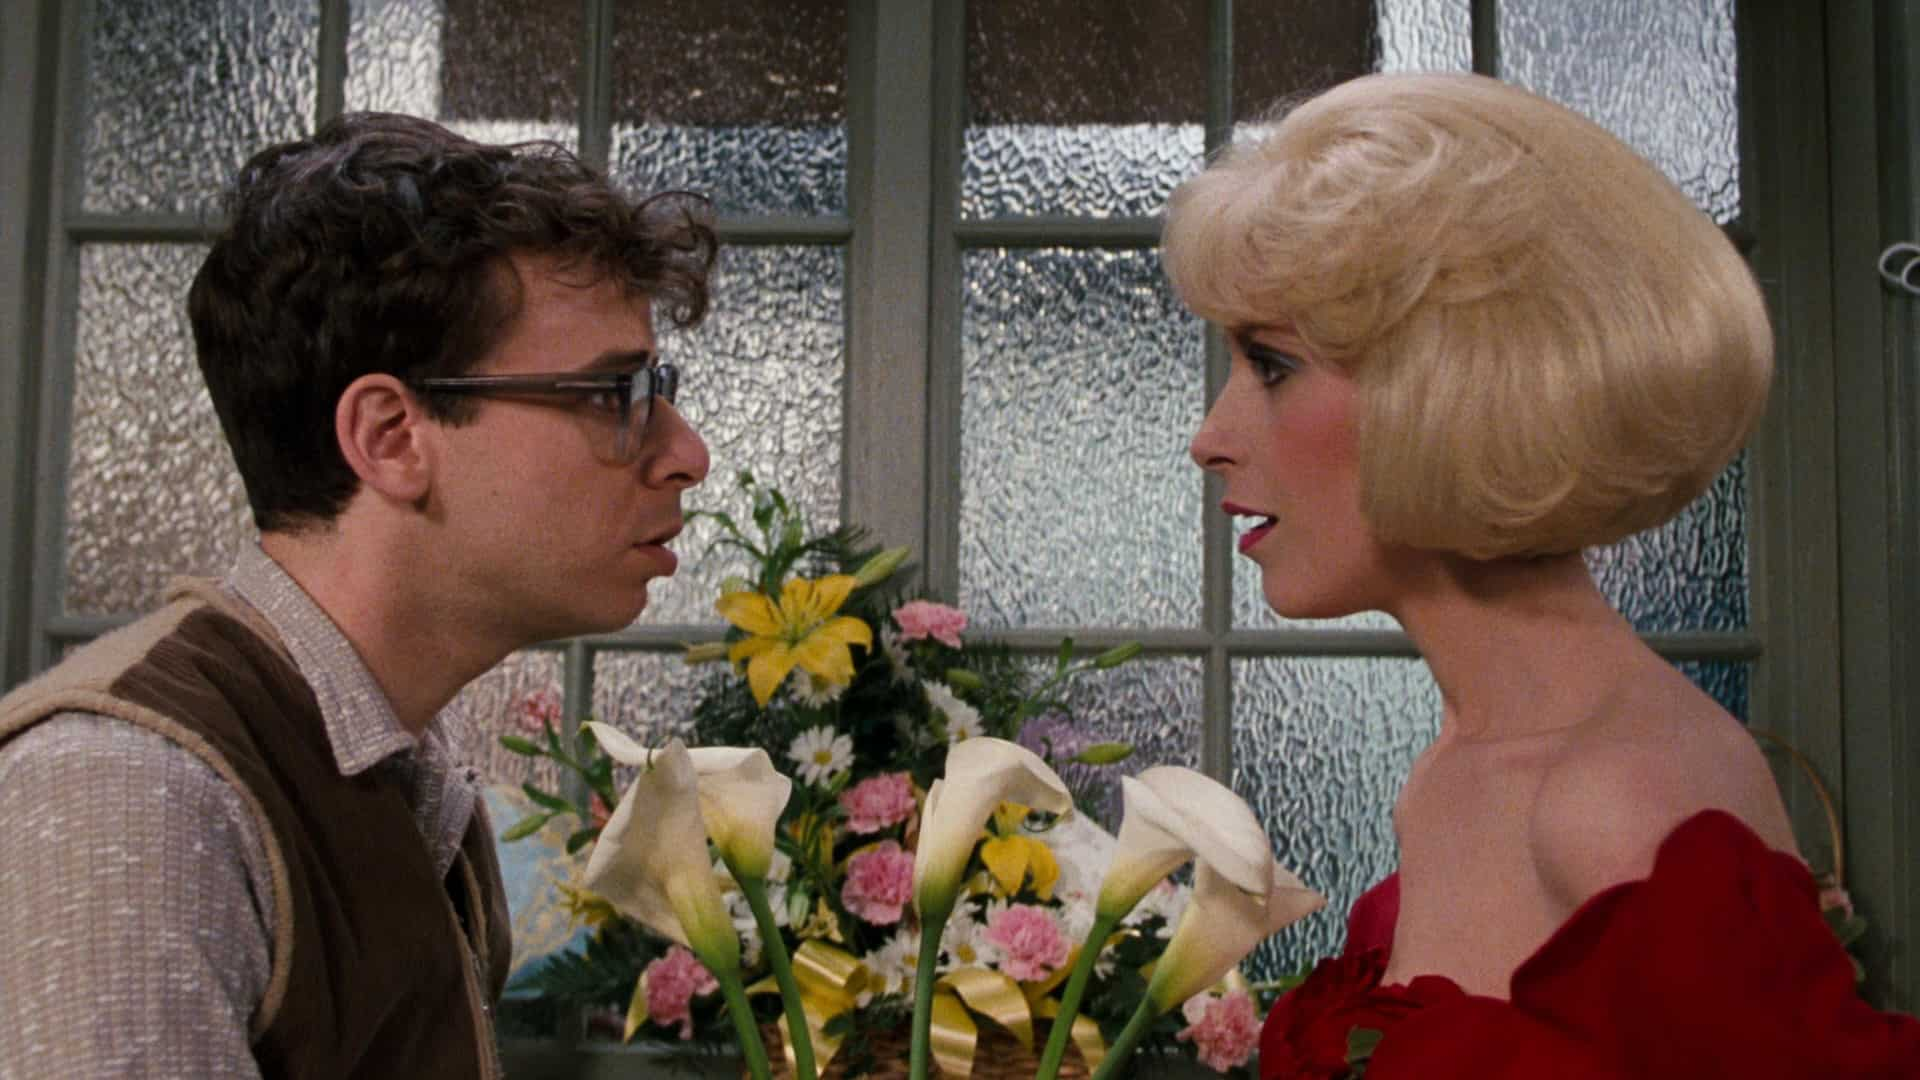 فيلم Little Shop of Horrors - أفلام موسقية